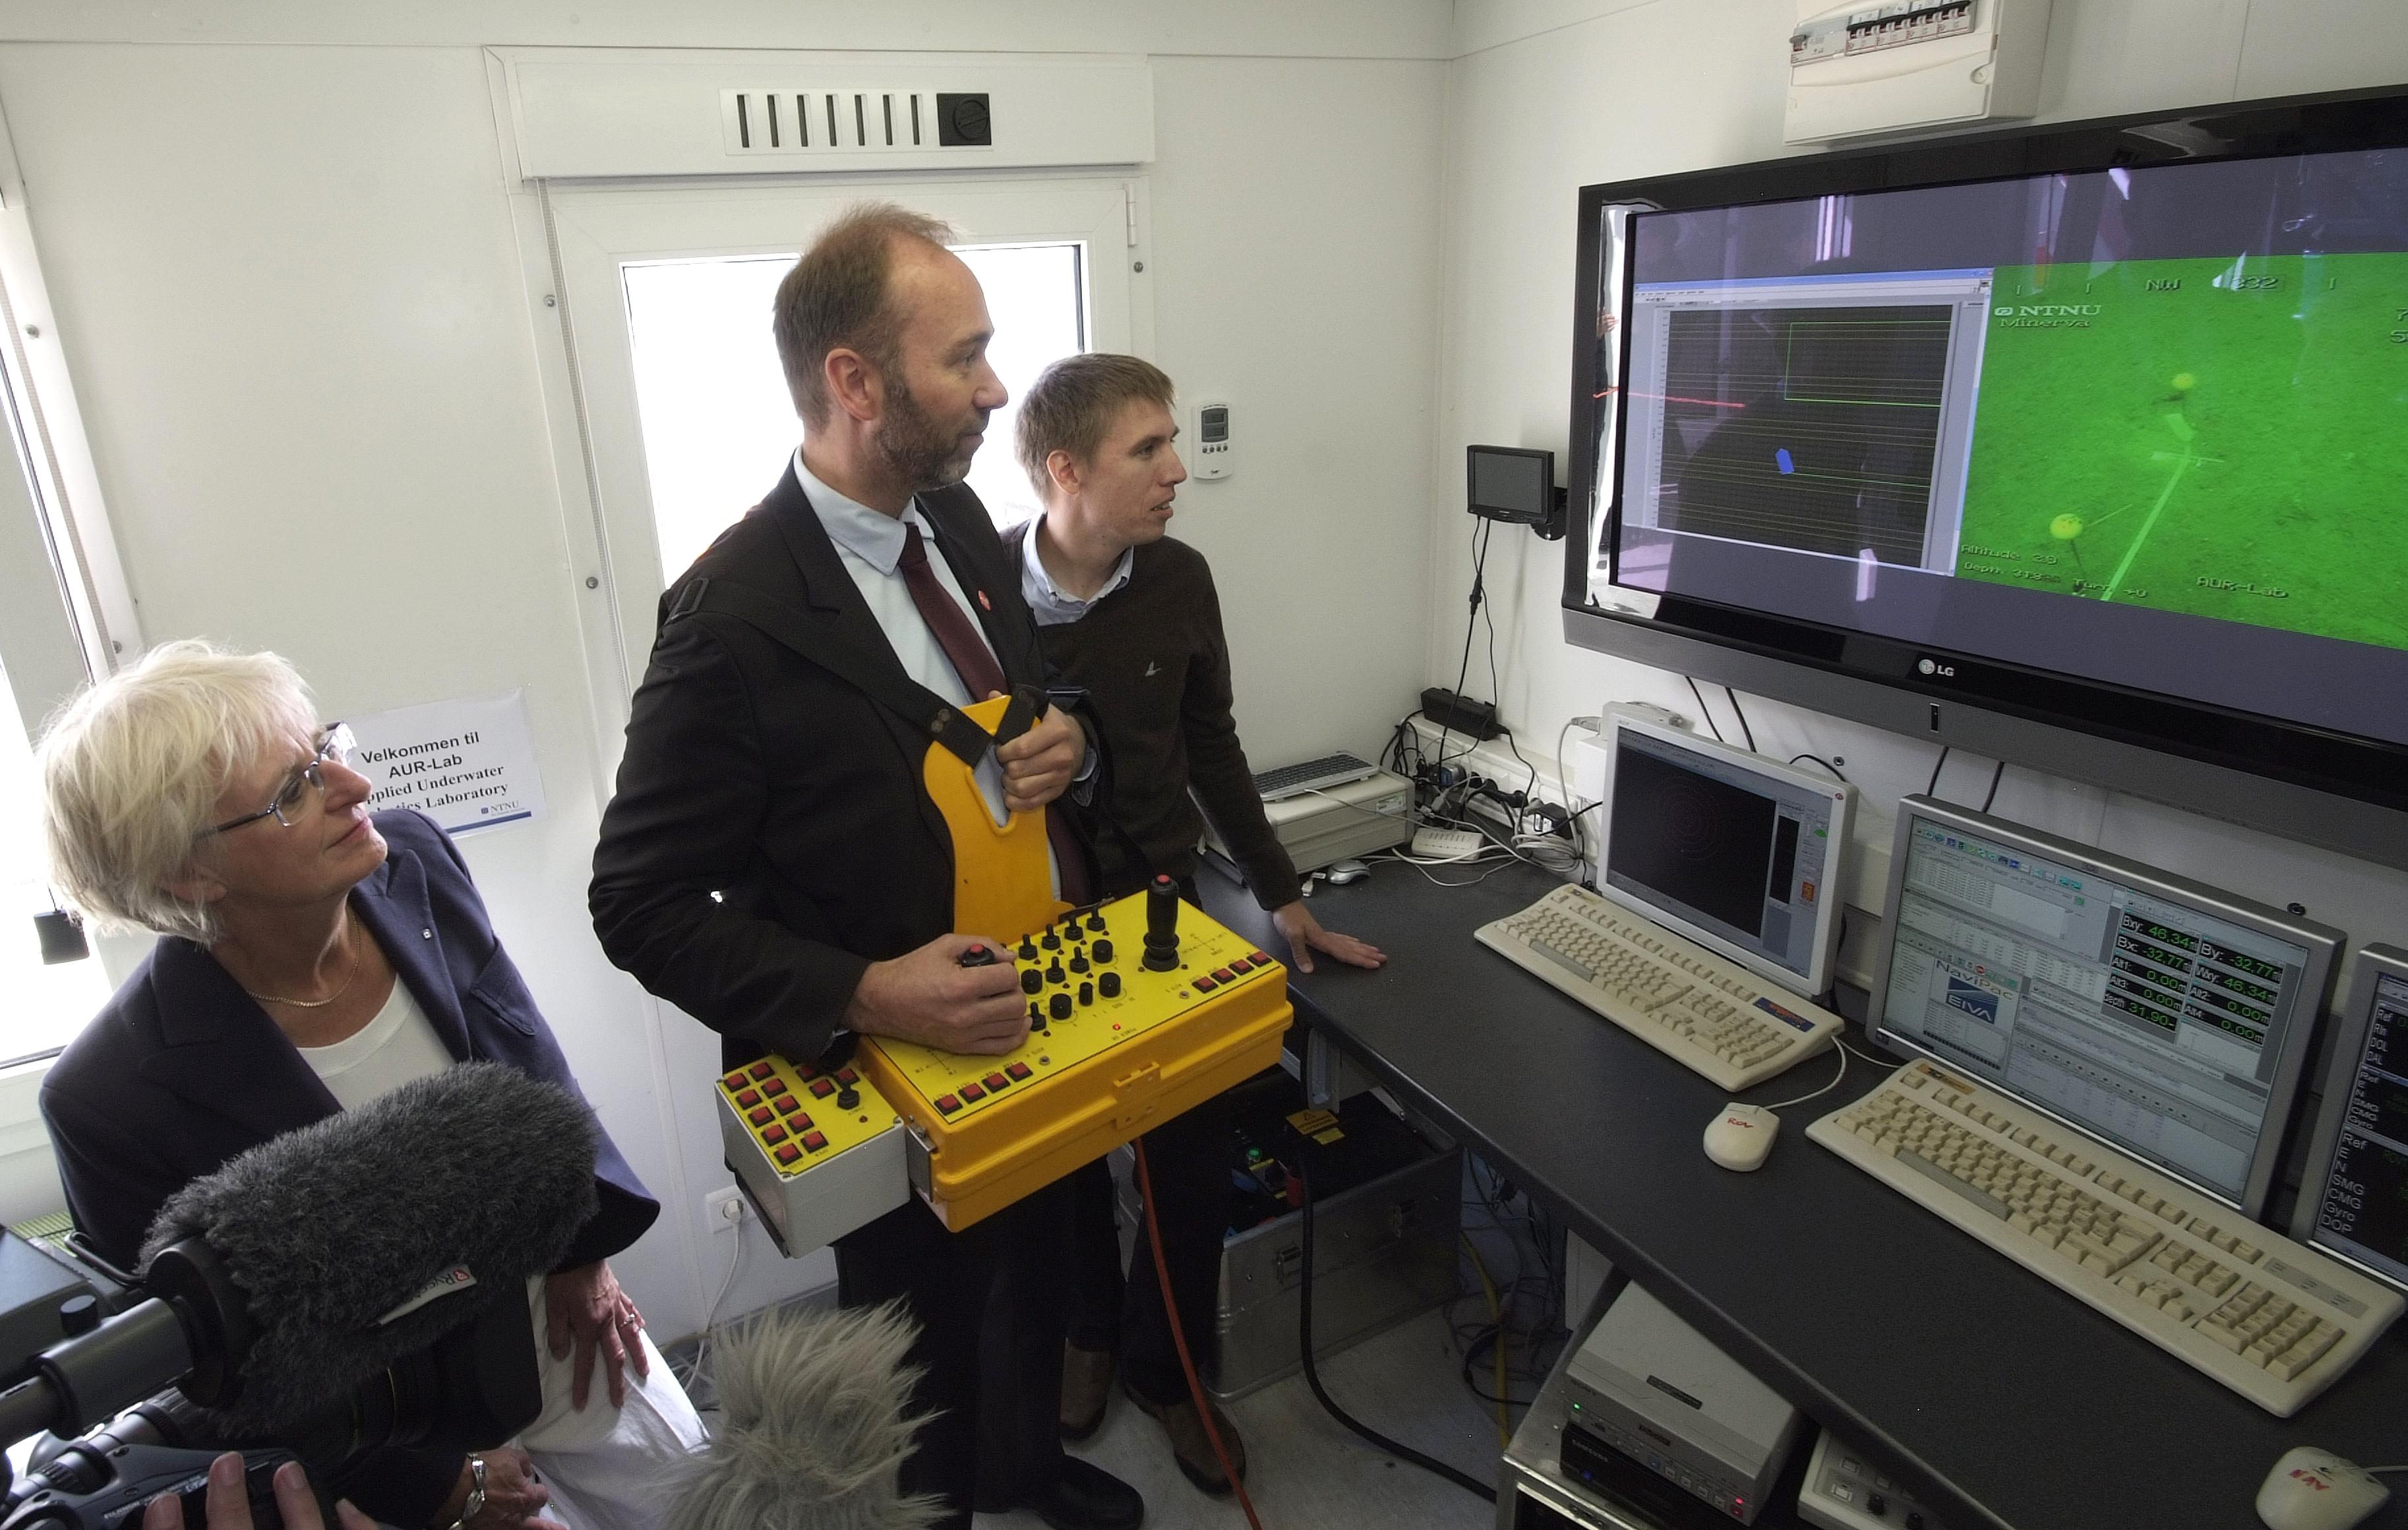 Trond Giske, Norwegian Minister of Trade and Industry remotely clips underwater ribbon.